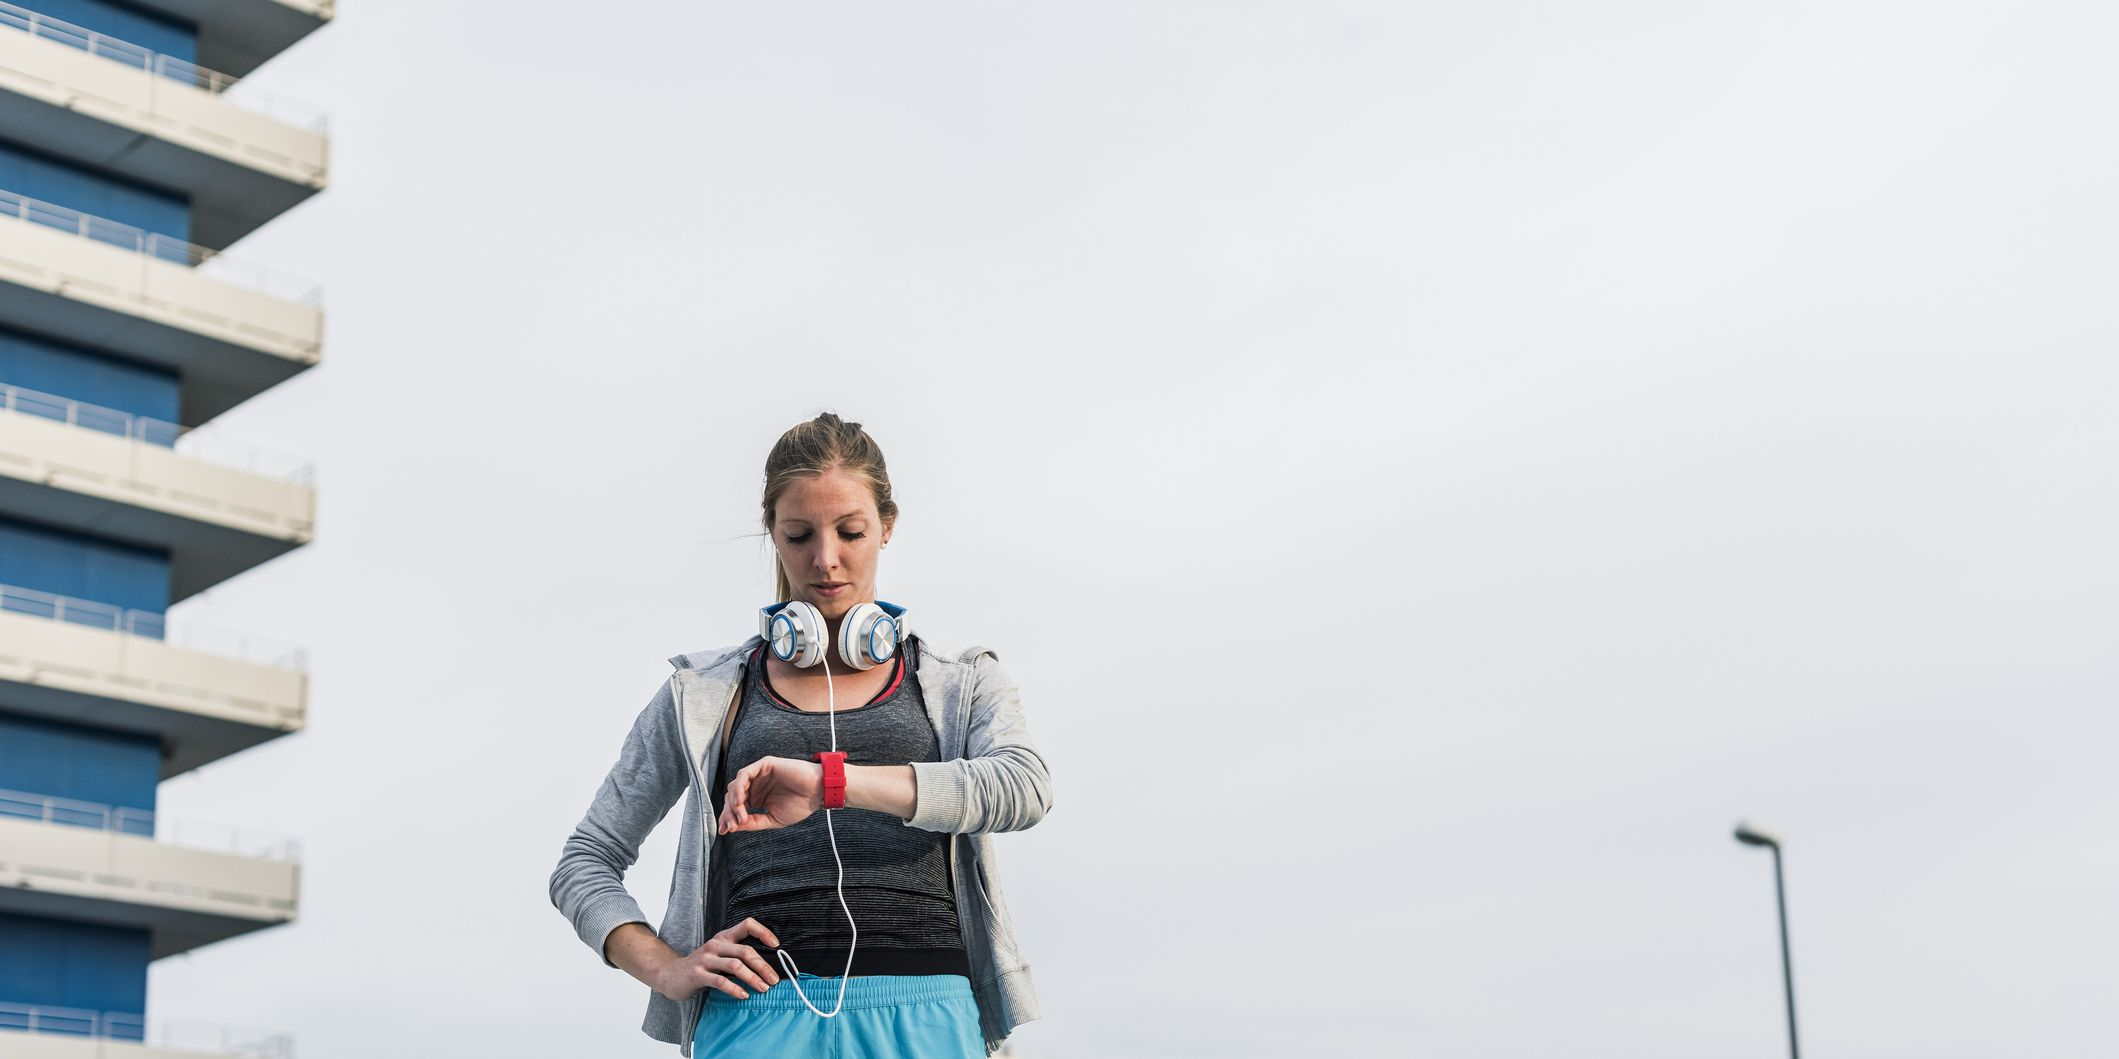 what is a normal heart rate for a runner?